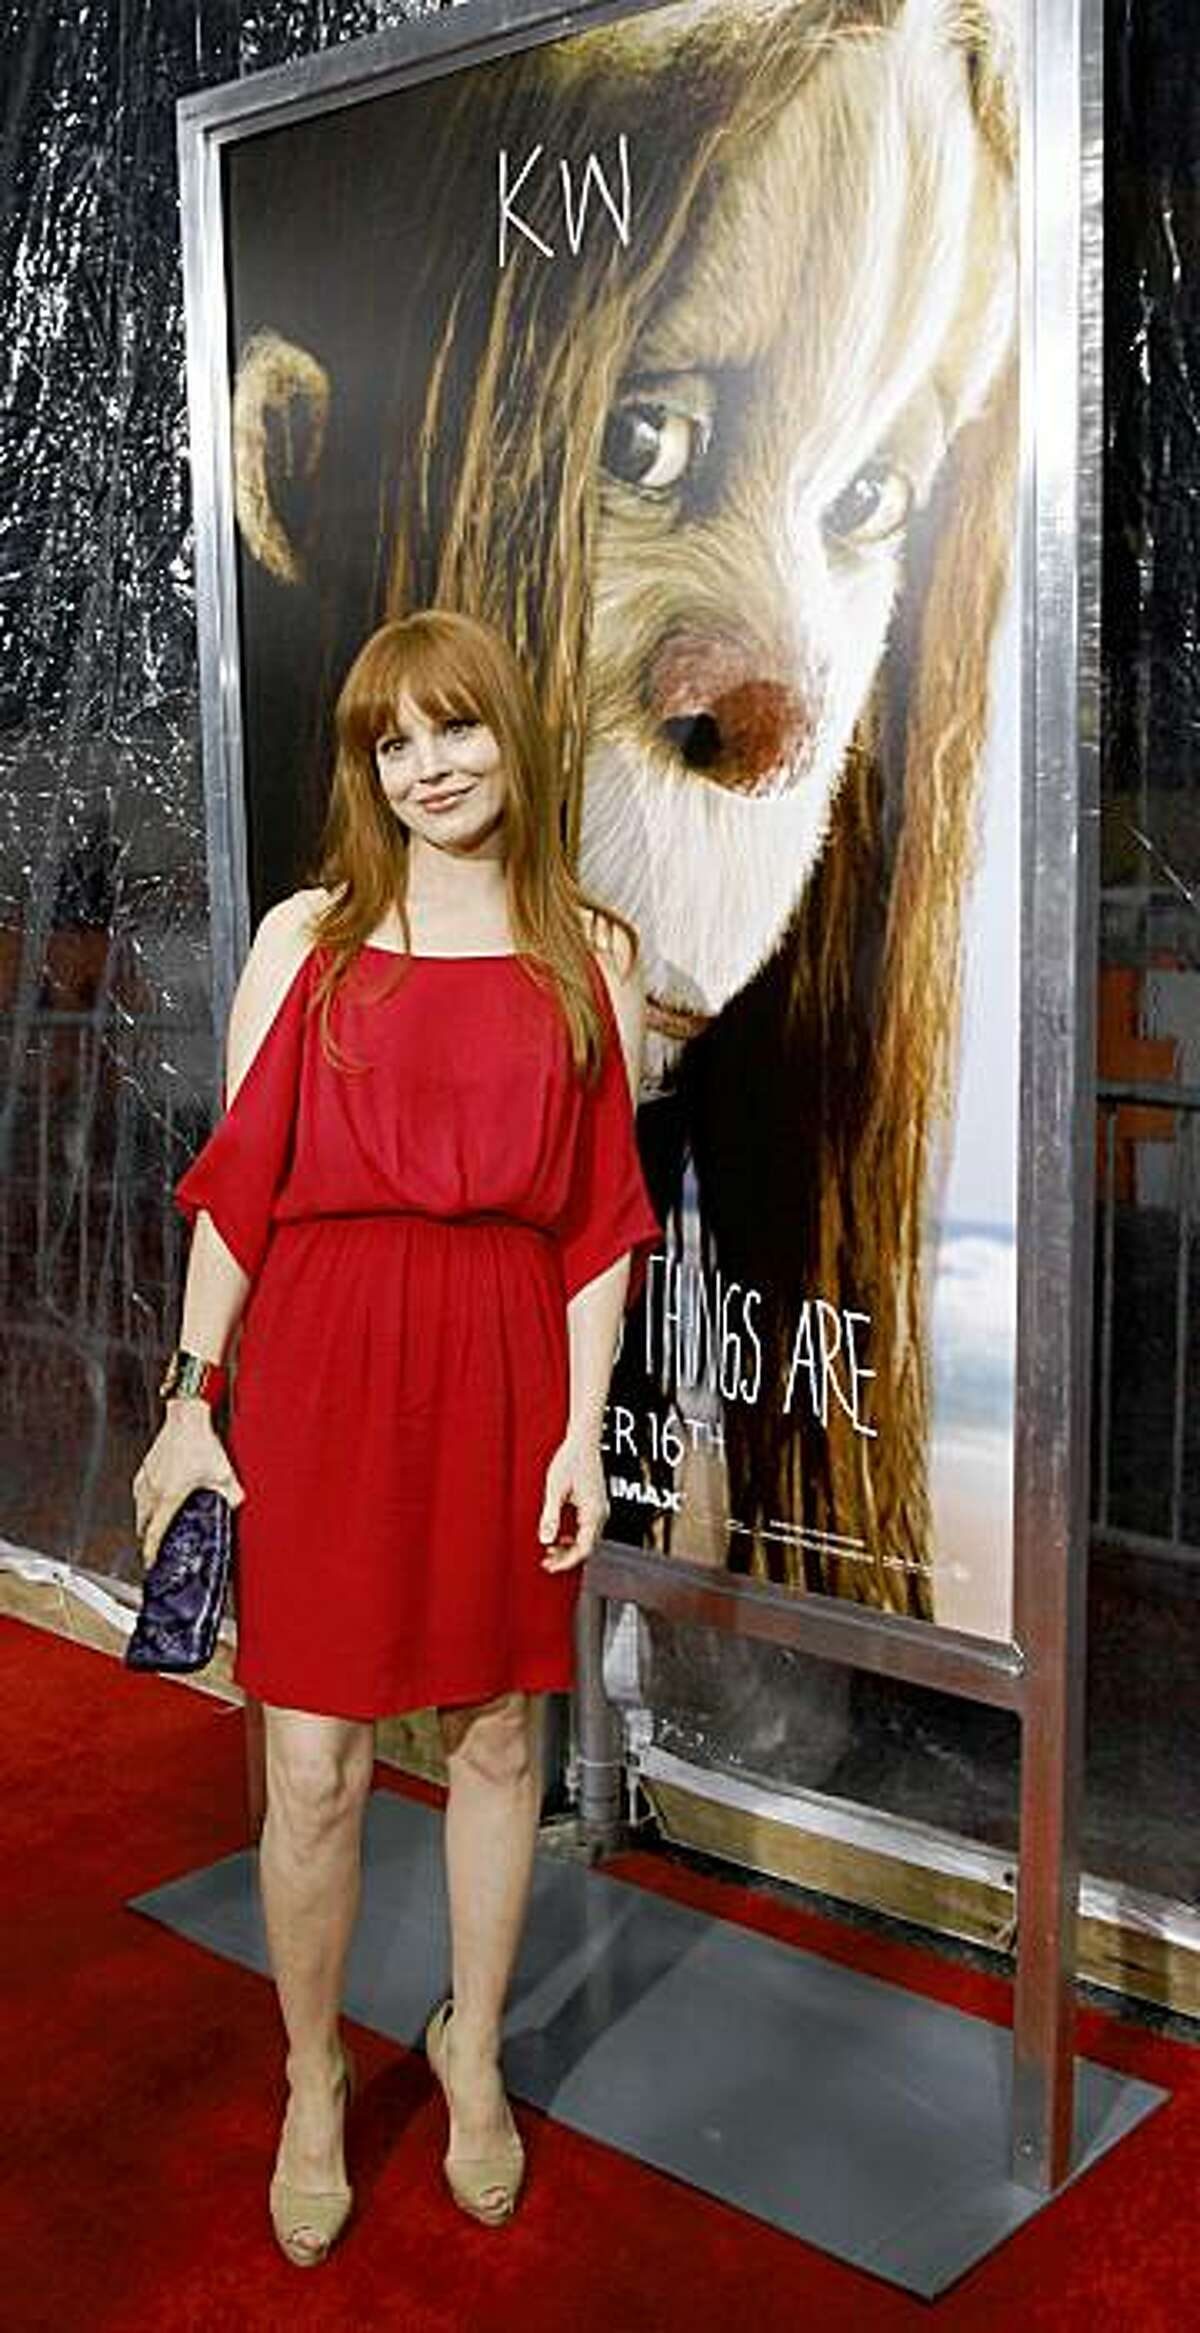 Lauren Ambrose stands in front of a poster of the character 'KW', who she plays in the film